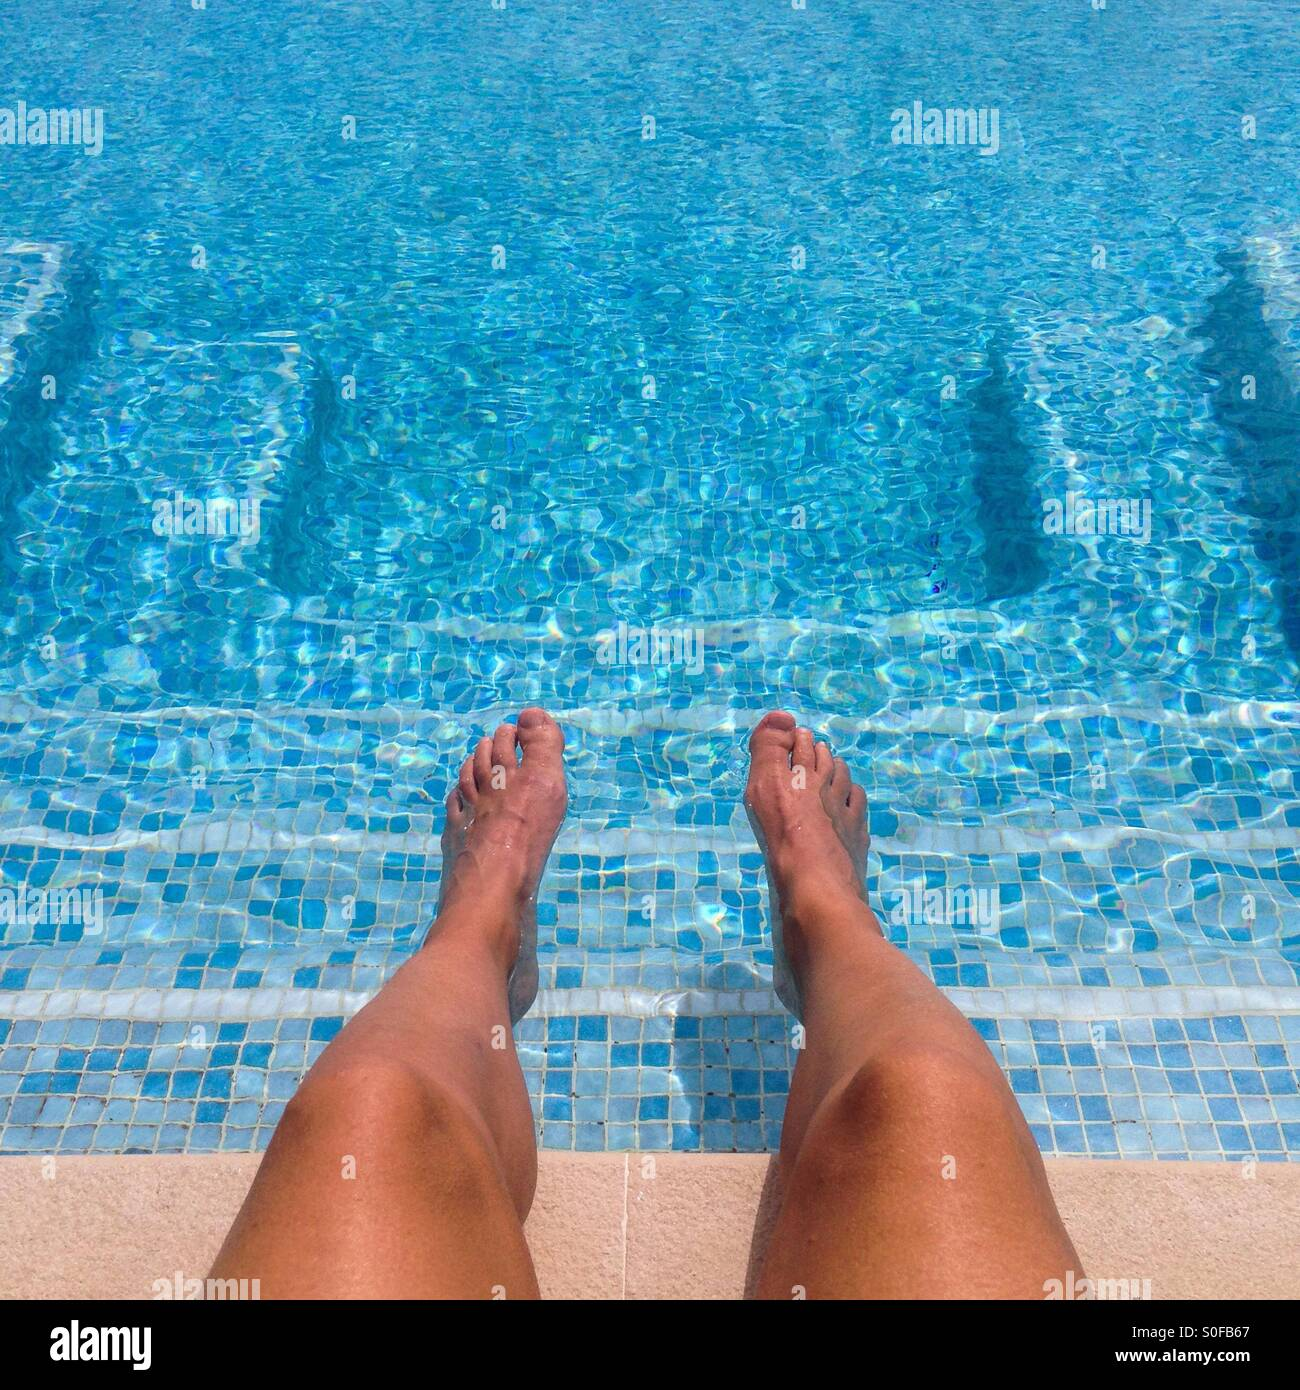 Feet and legs on a swimming pool with a square shape of for Average square footage of a swimming pool